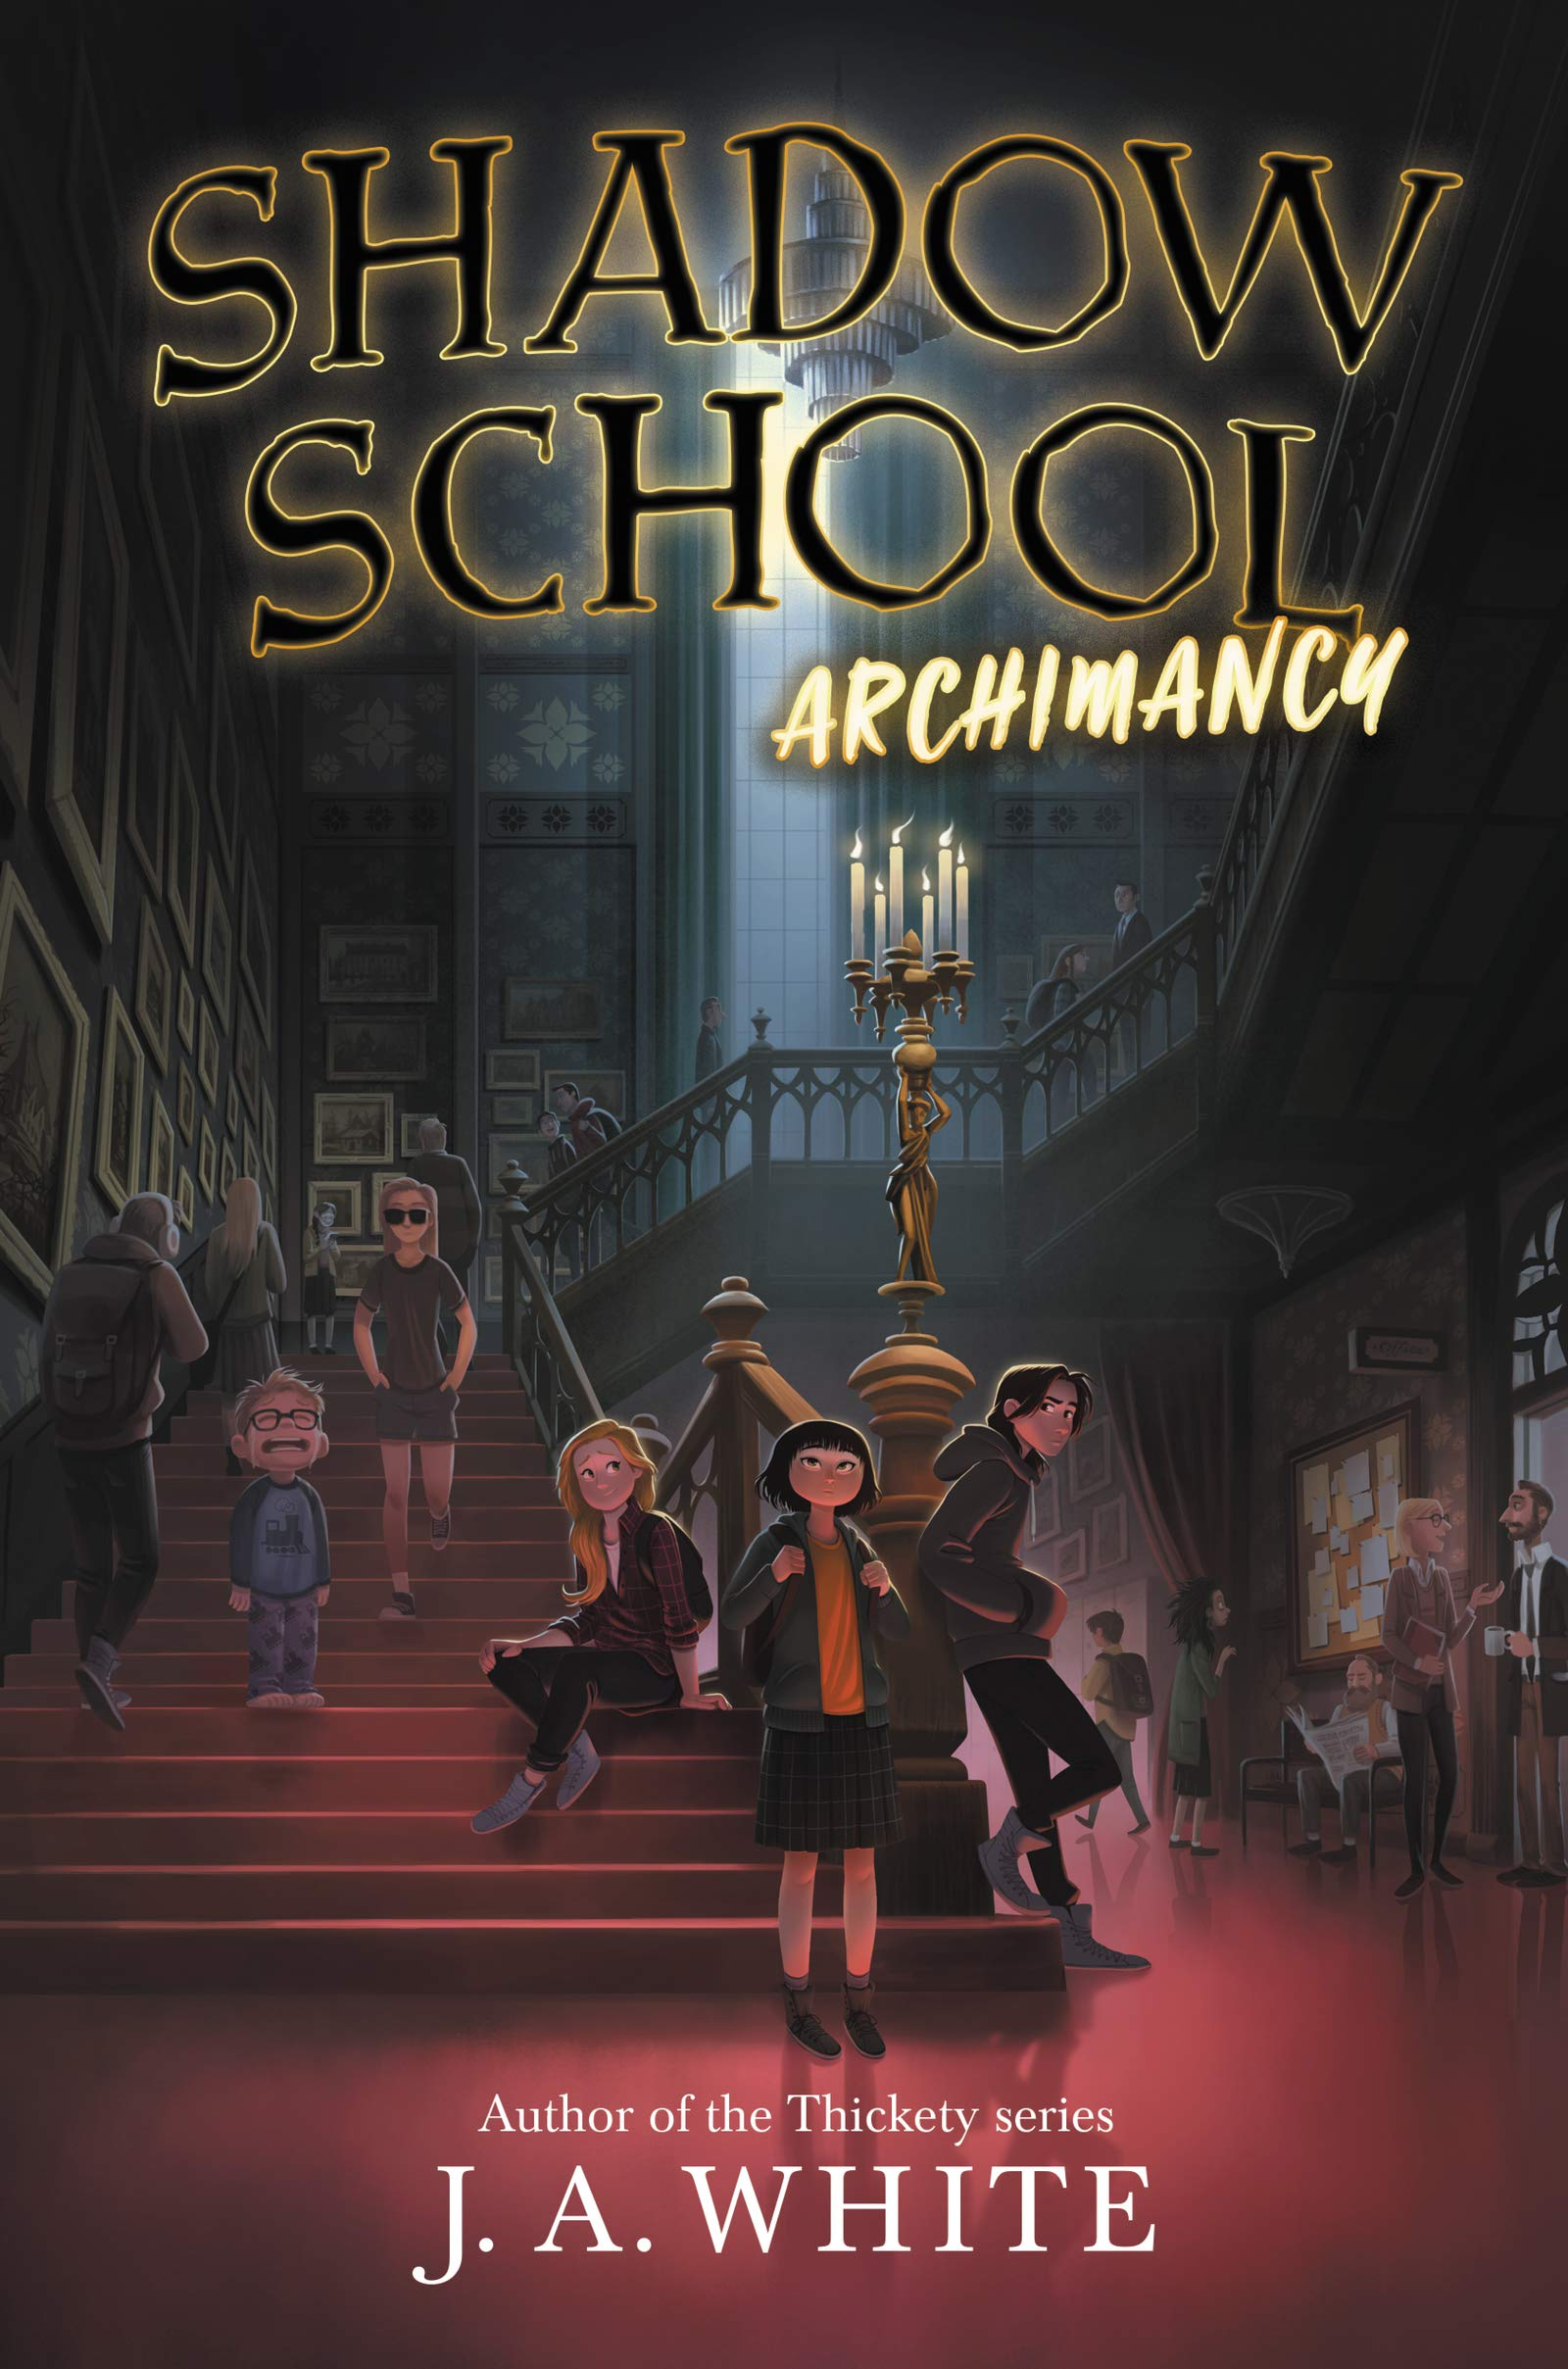 Image result for archimancy shadow school